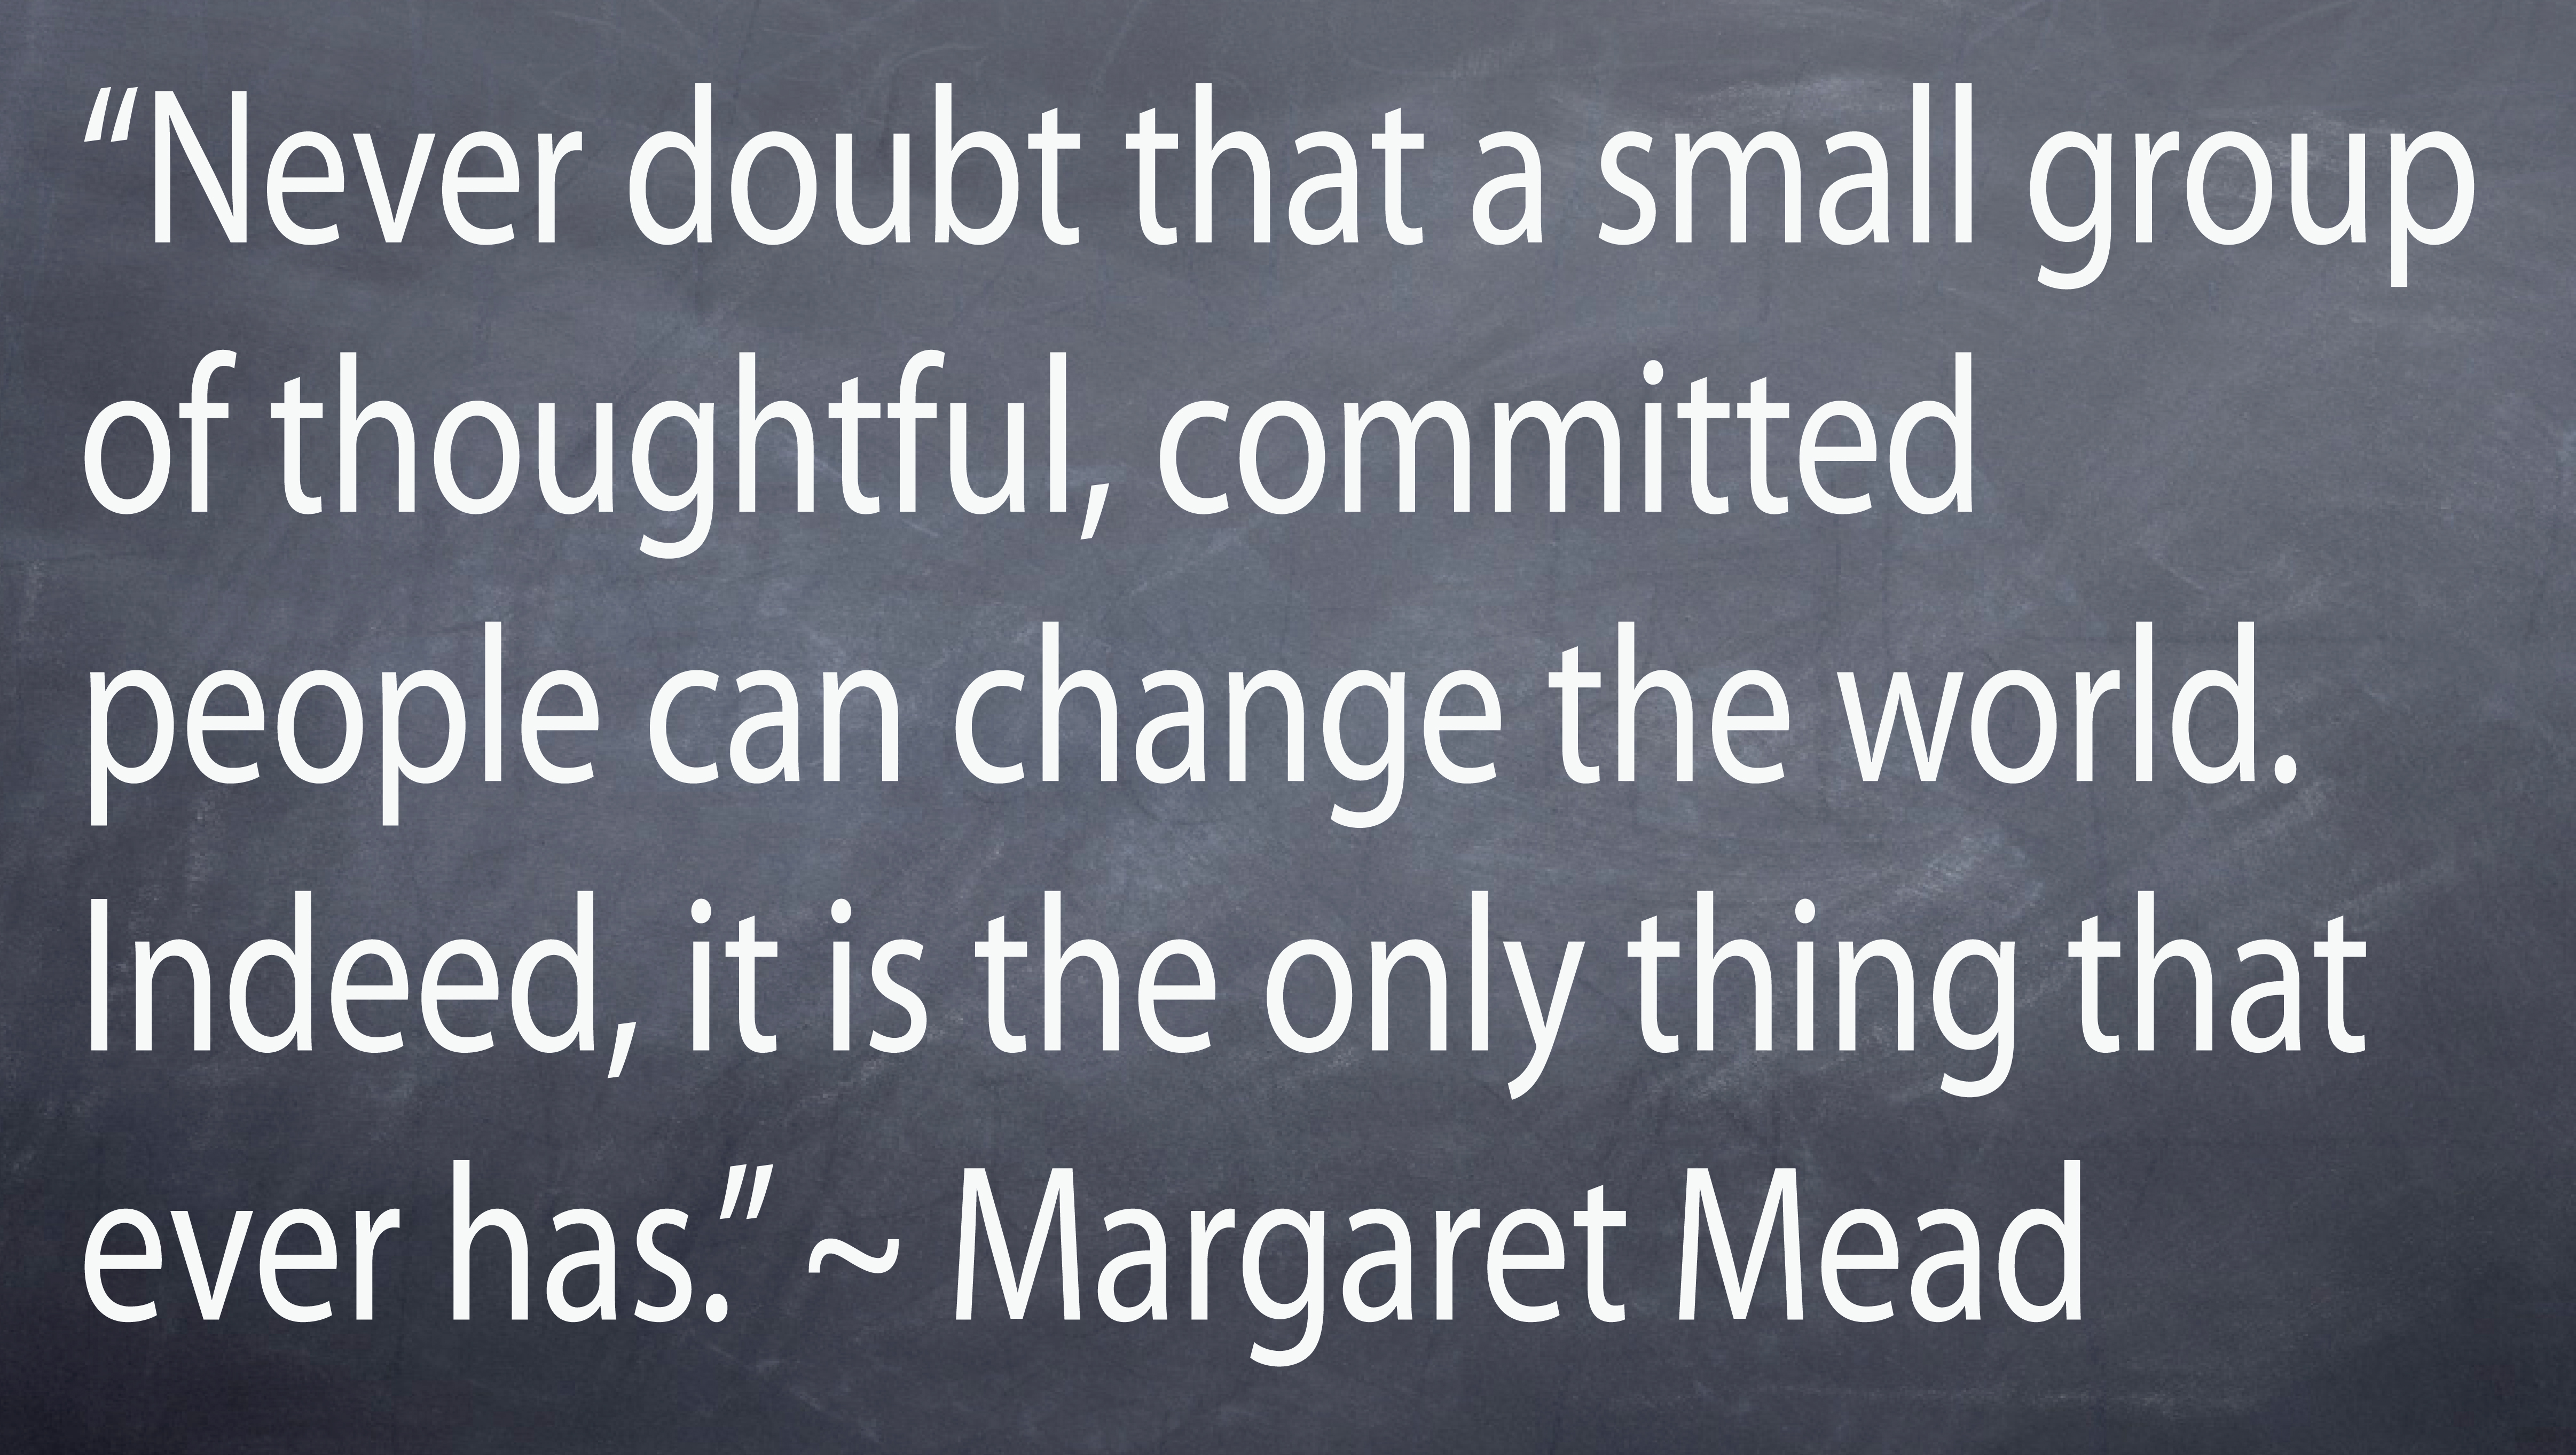 margaret mead biography Mead, margaret (1901 - 1978) place : united states of america subject : biography, anthropology us anthropologist who established the practice of fieldwork in anthropology and - with her account of adolescence in samoa - popularized the idea within her own country that there are alternatives to the american way of life.